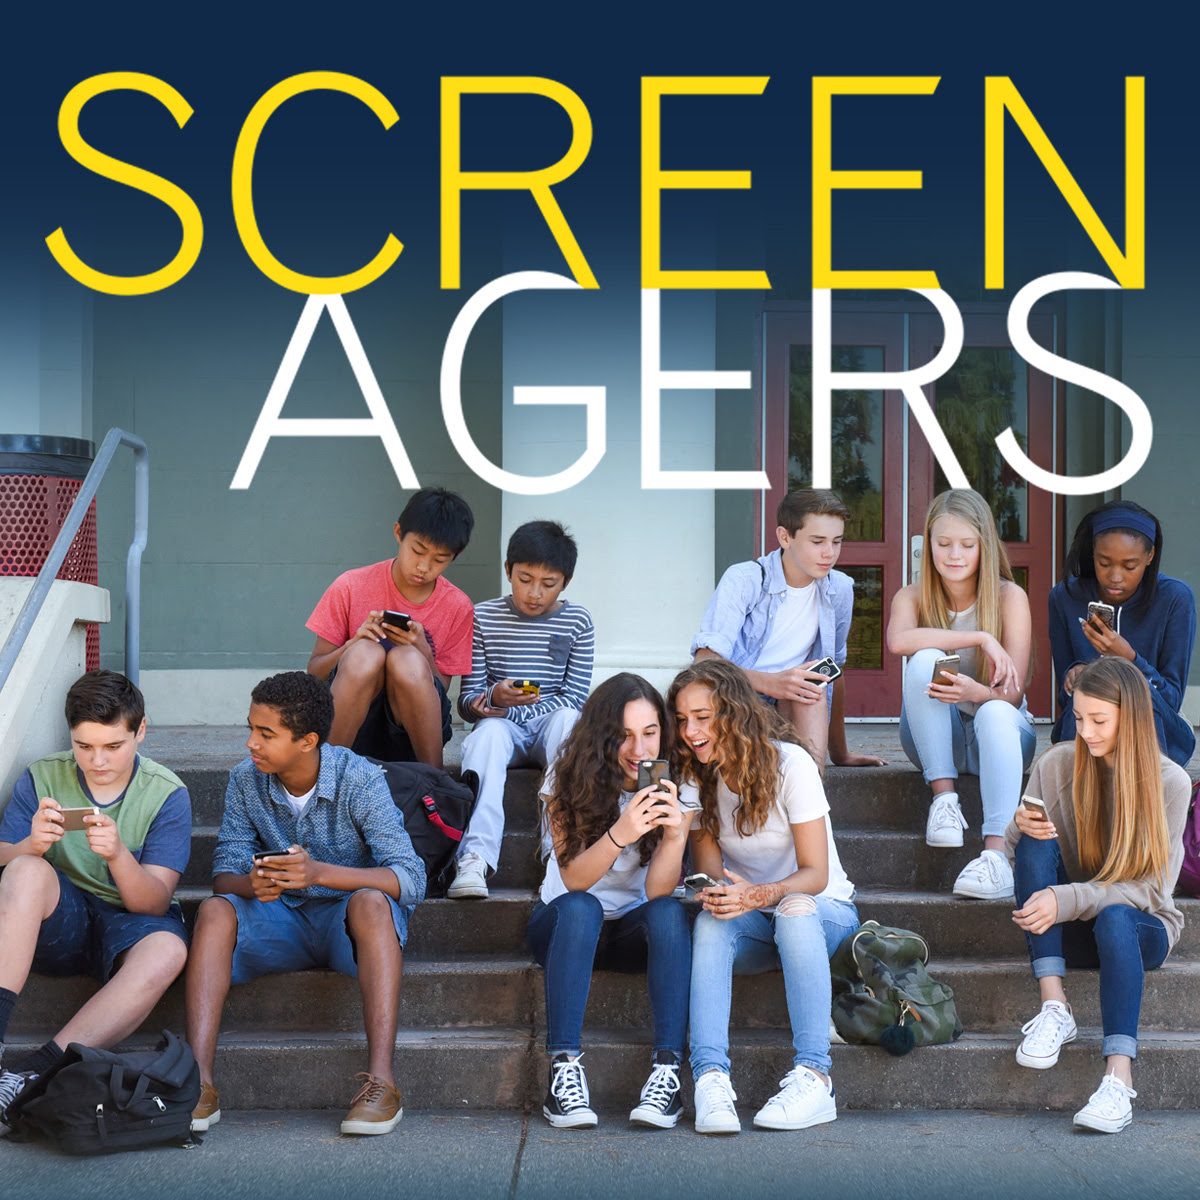 Screenagers Film Presented By Hungary Creek Middle and Echo Lake Elementary PTA